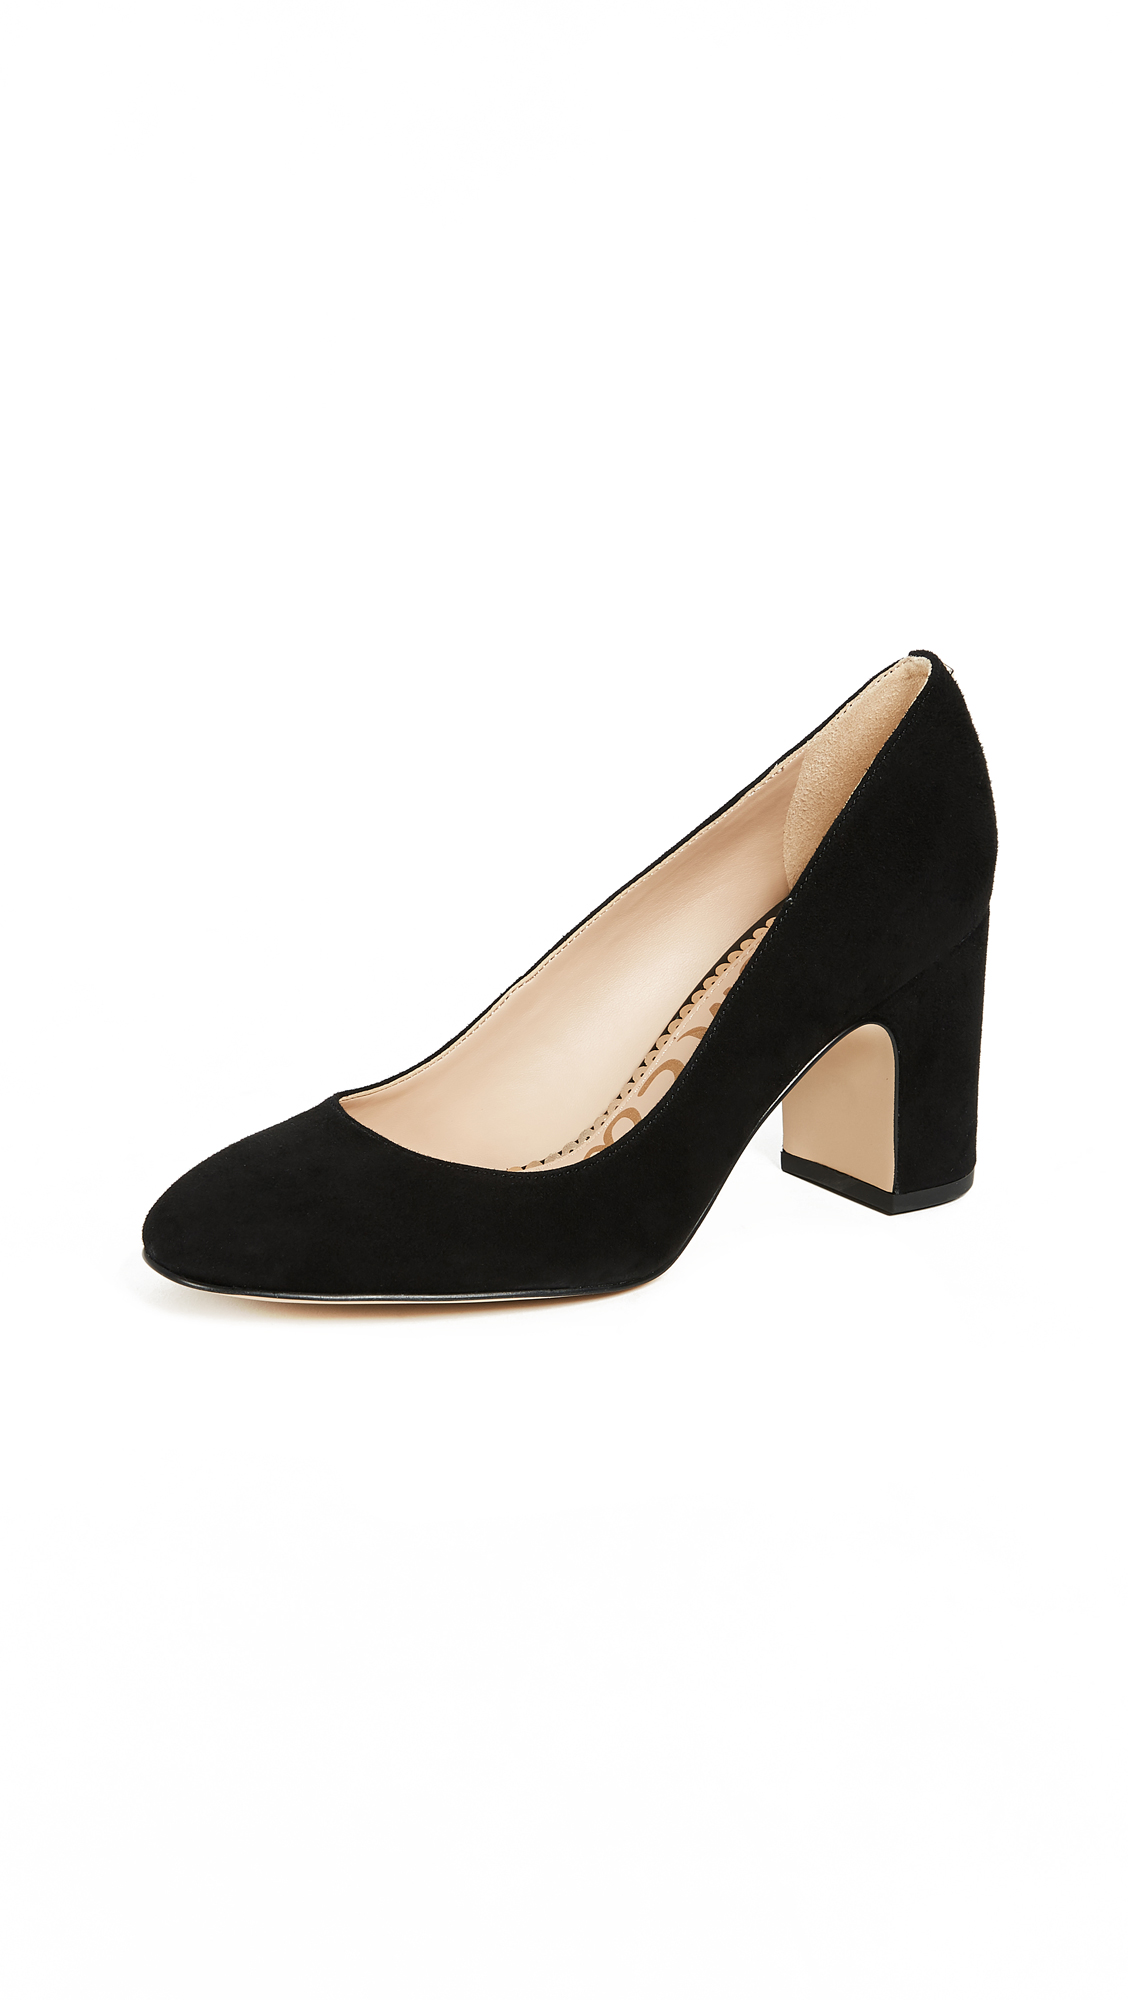 Sam Edelman Junie Pumps - Black